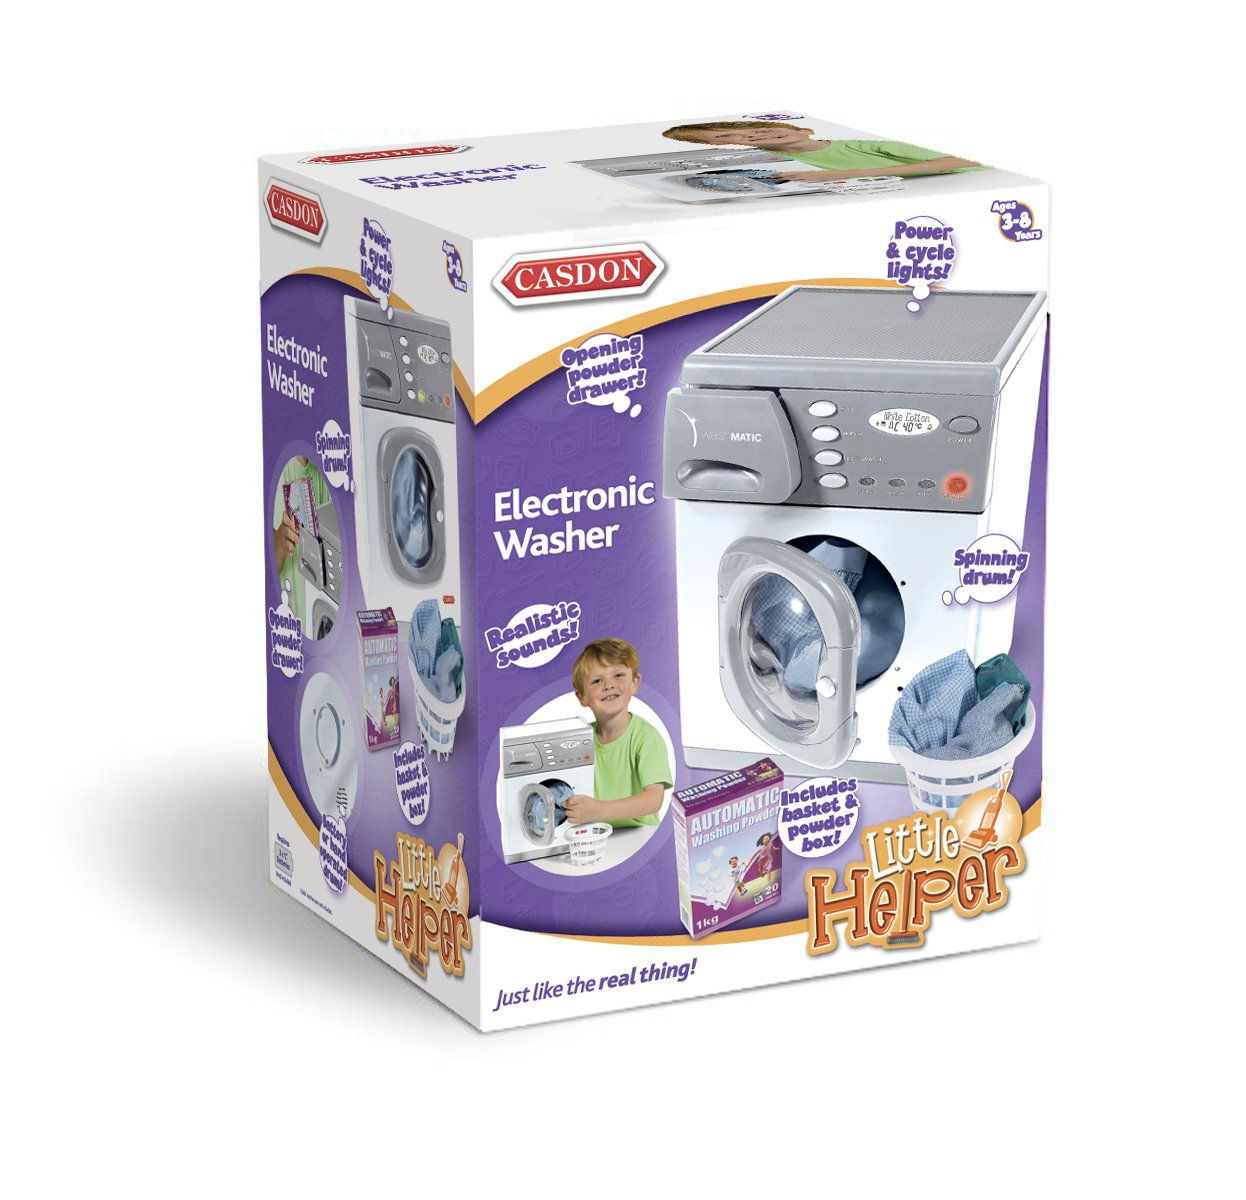 Casdon 476 Toy Electronic Washer 1to2 3to4 Dressing_Up_and_Make_believe Role-play